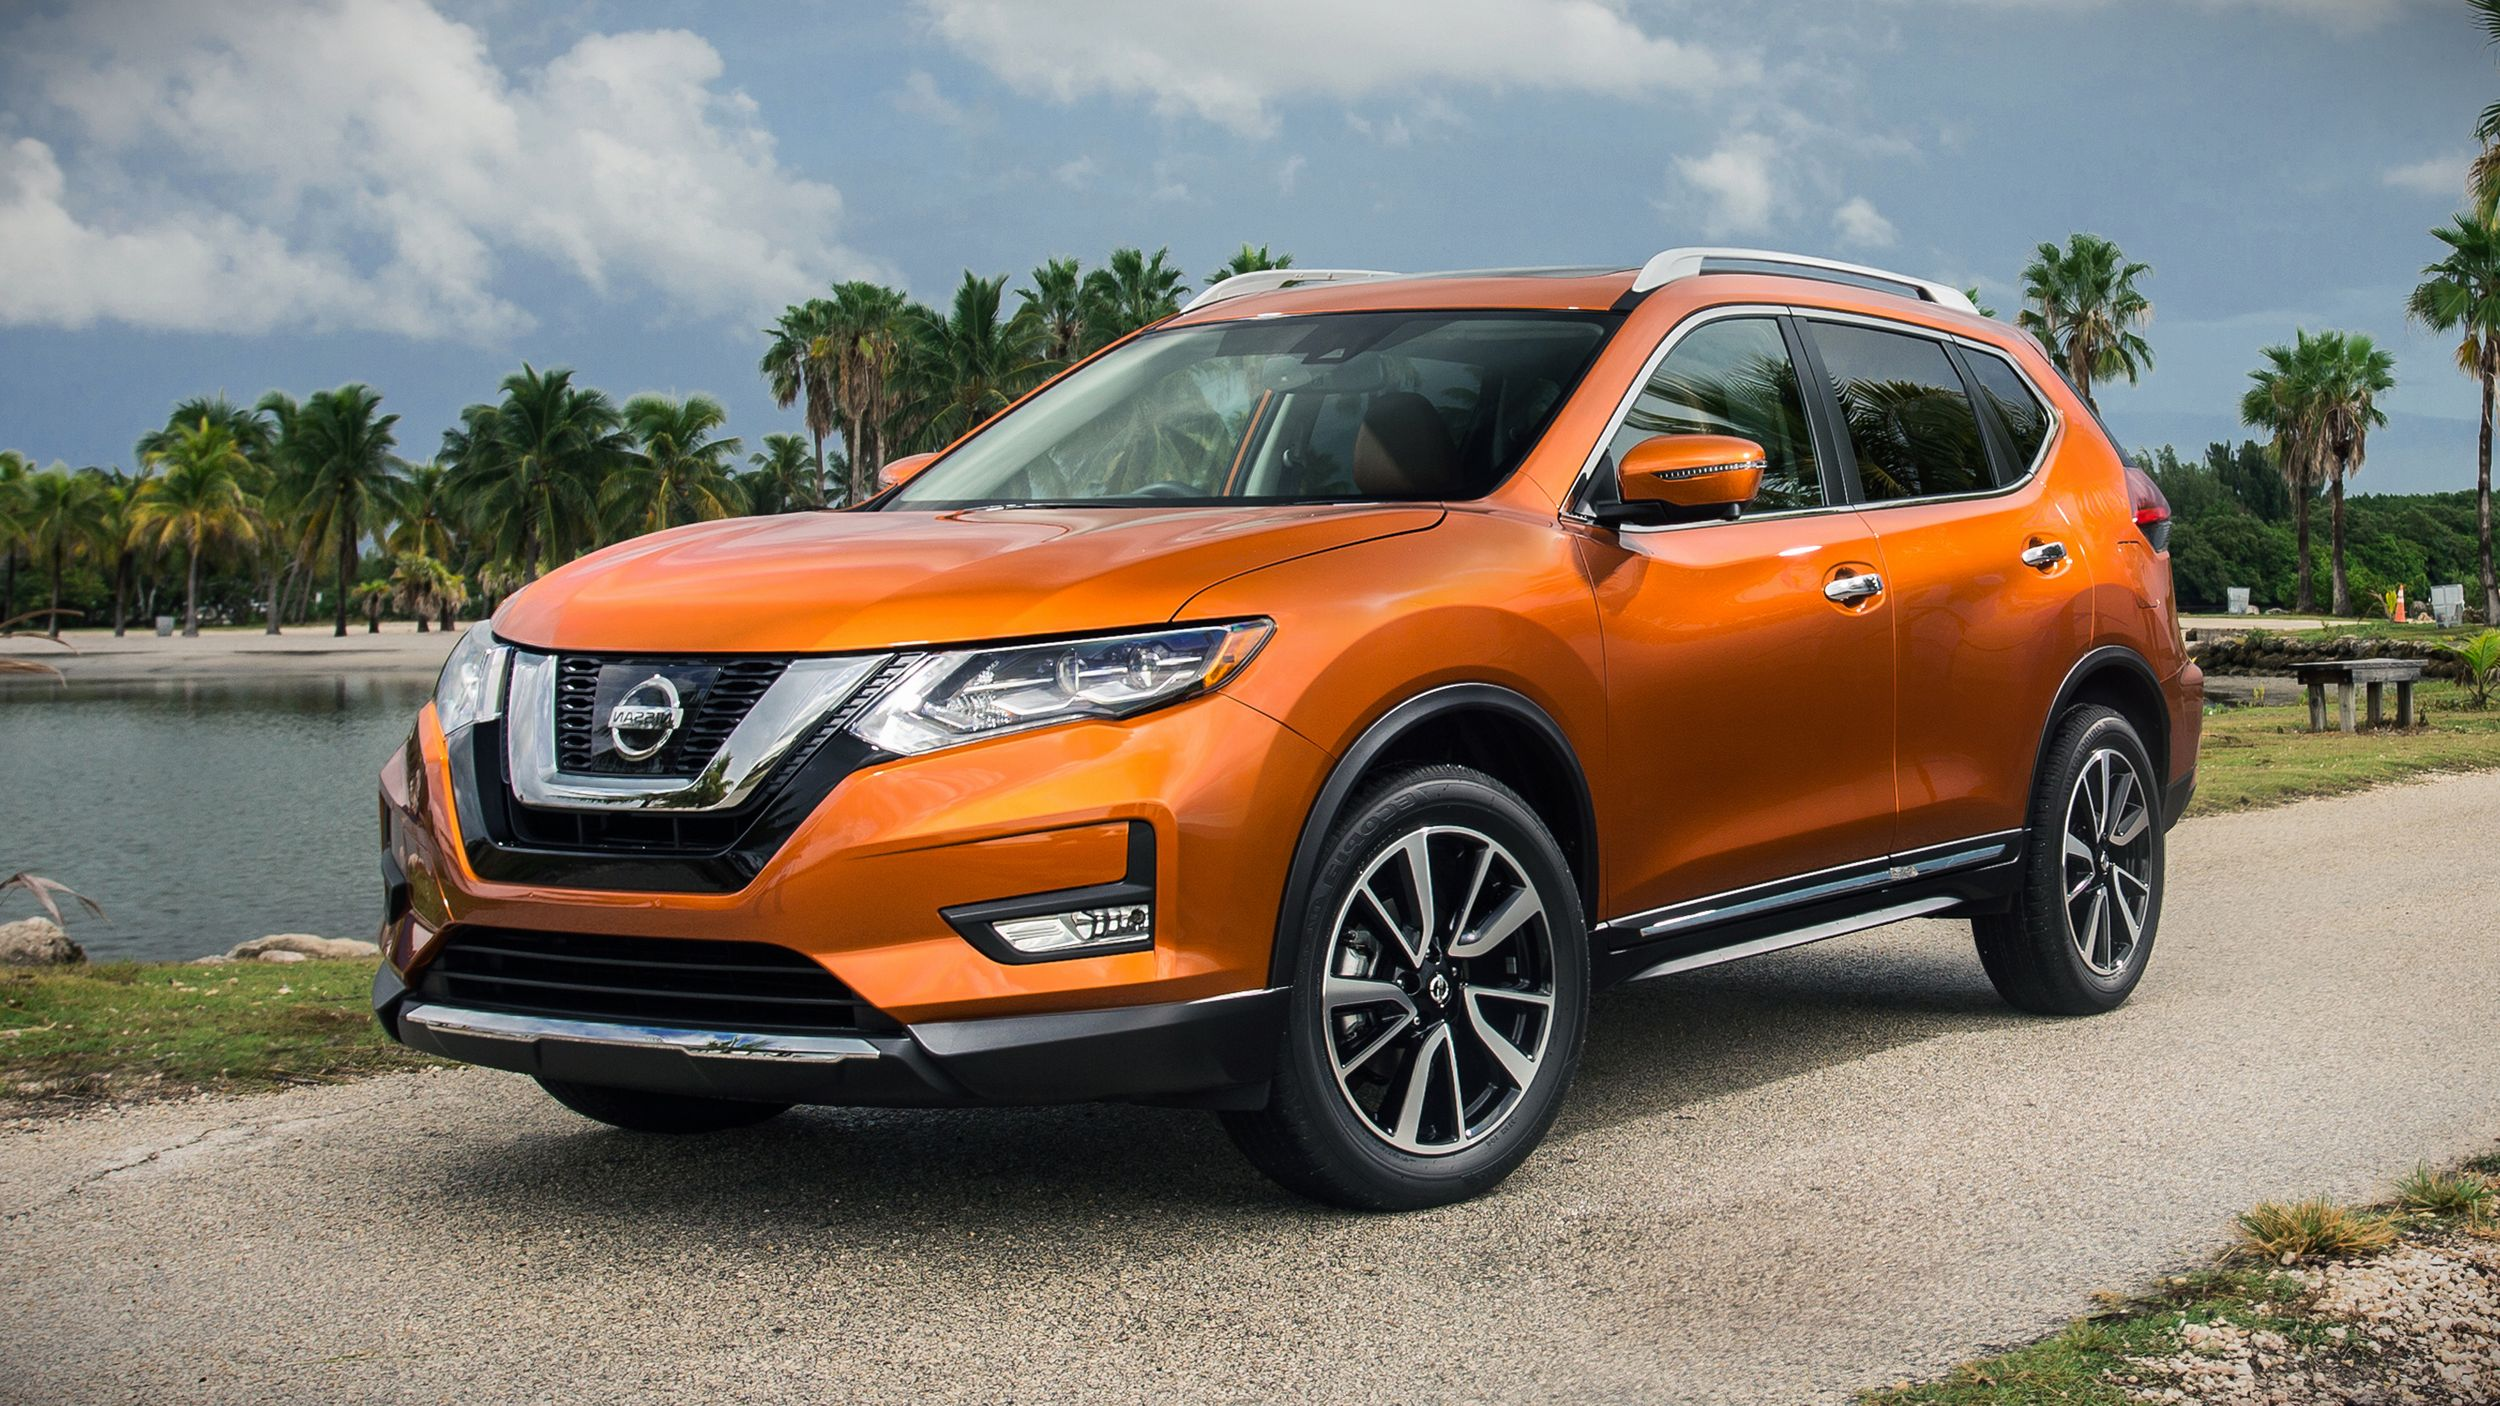 2018 Nissan X-Trail review